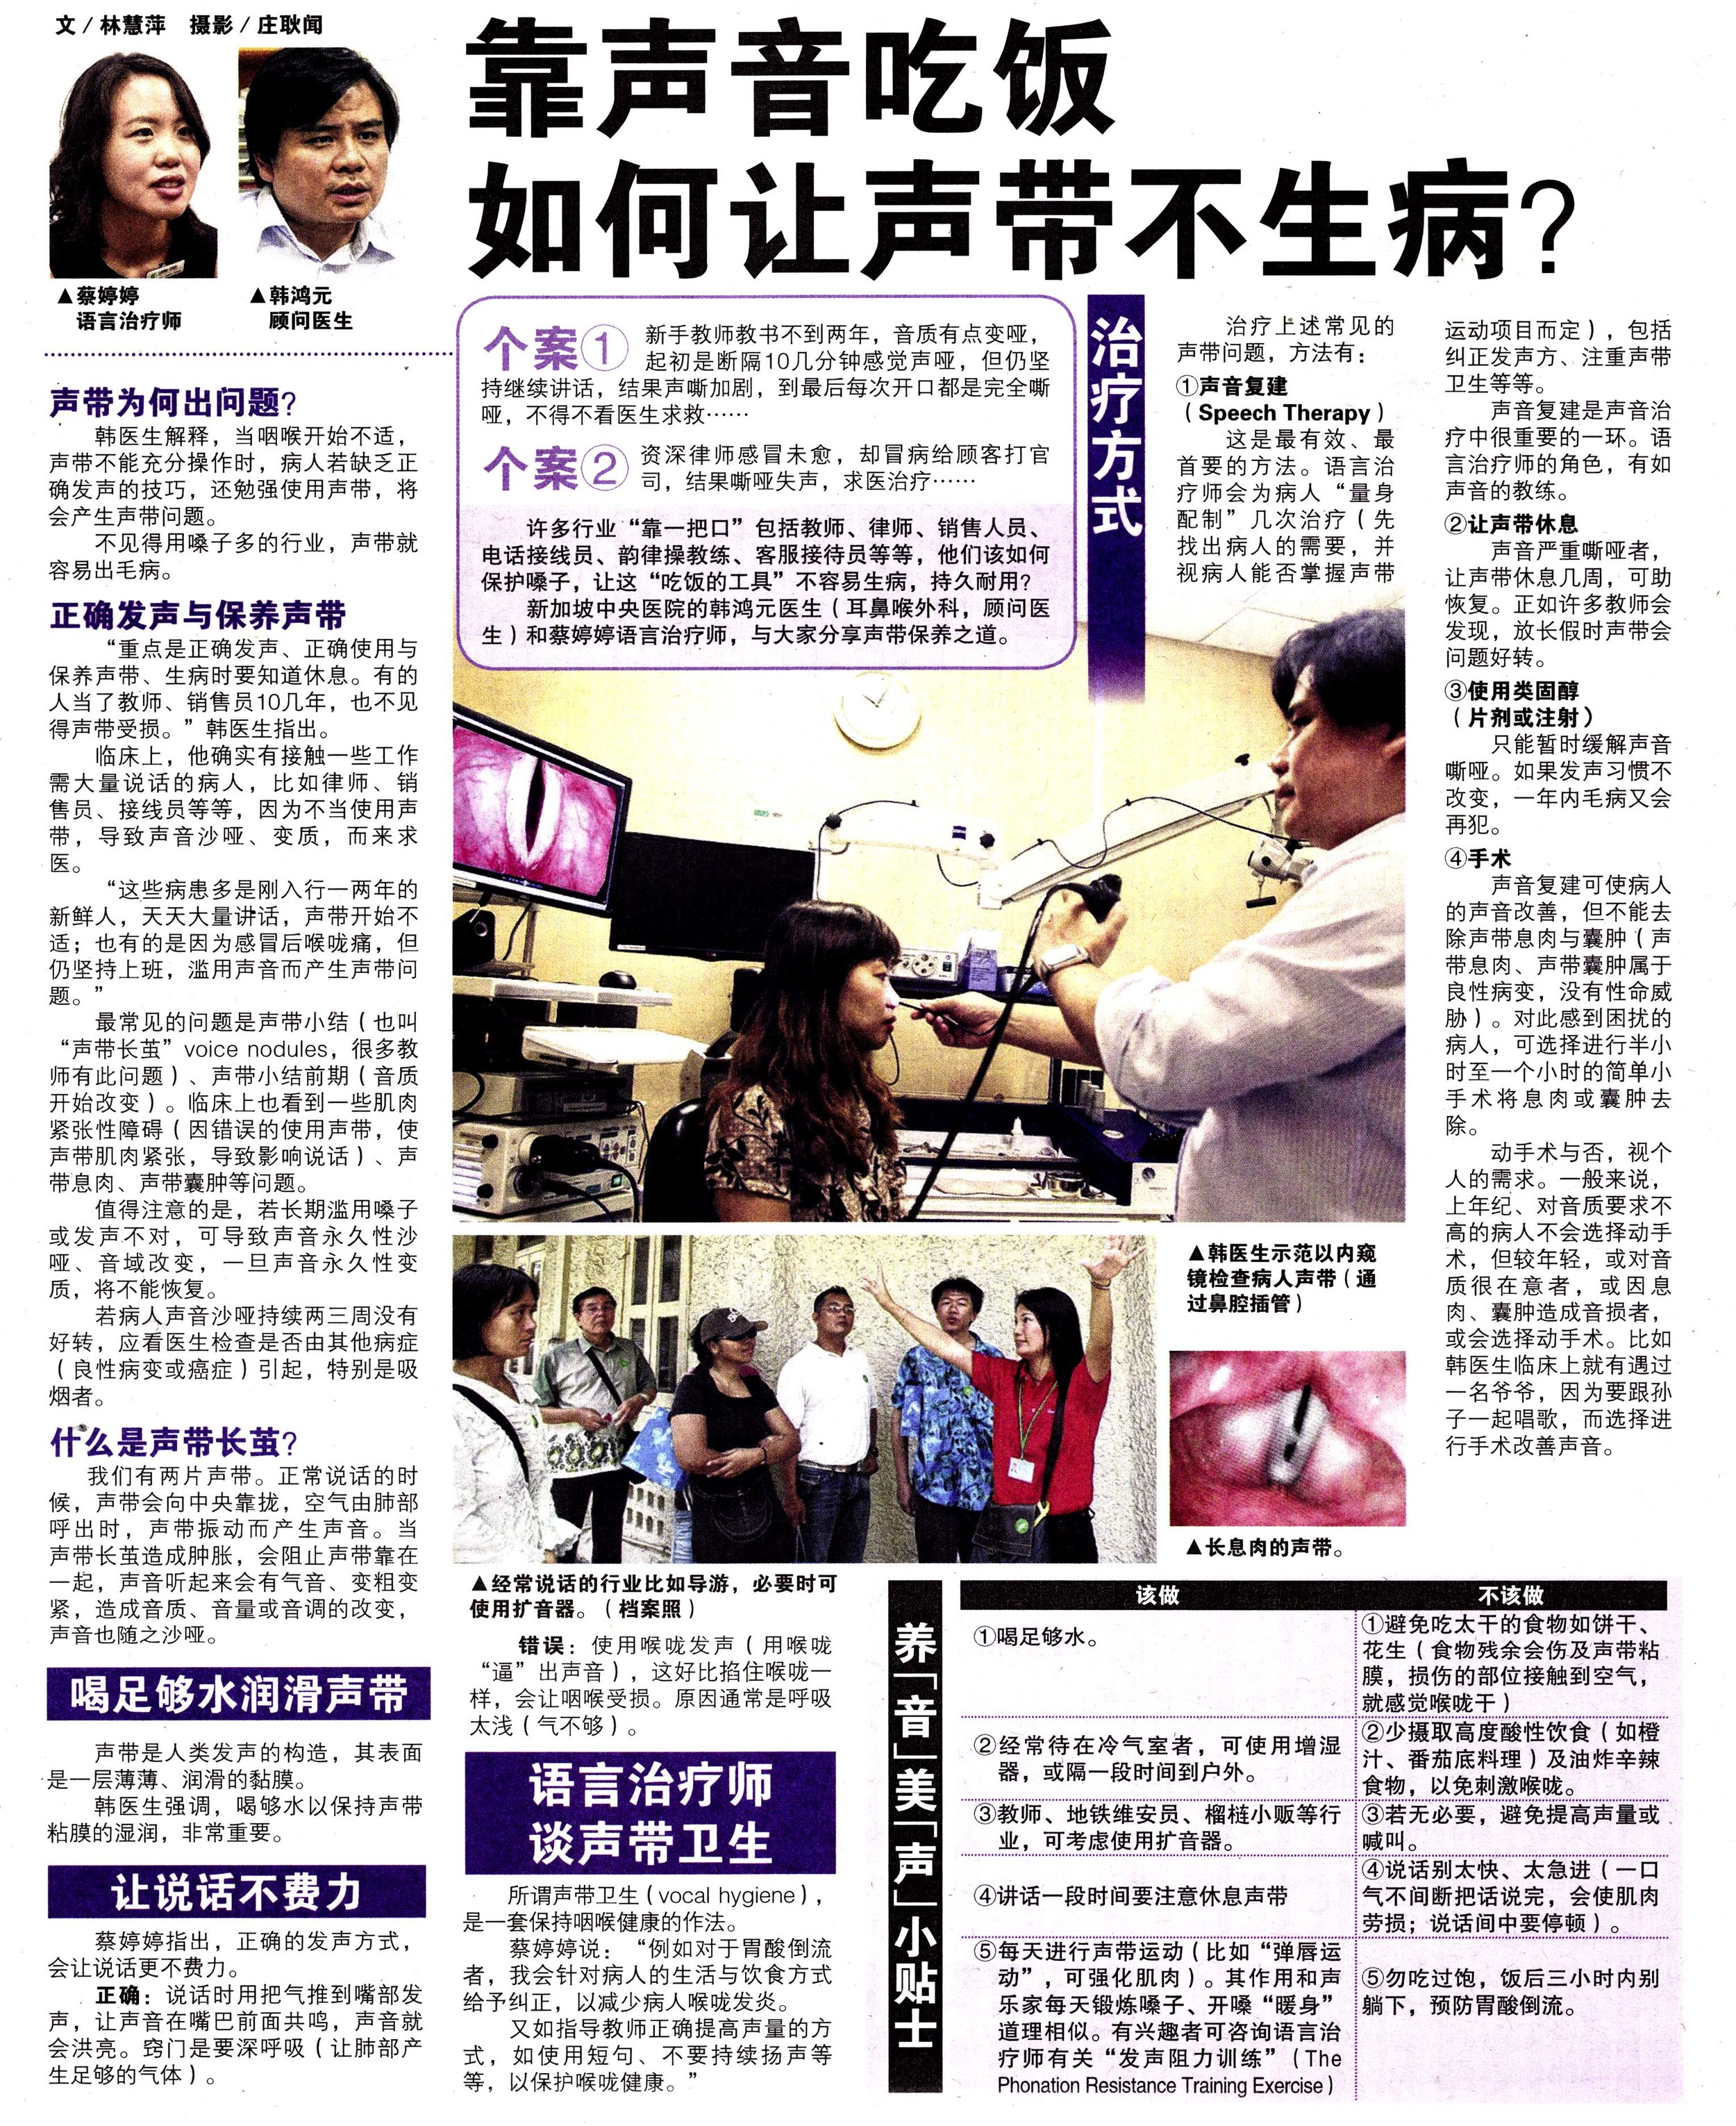 WB-06 Jun 16-Pg 08-Rely on sound for earning, how to make the vocal cords do not get sick.jpg